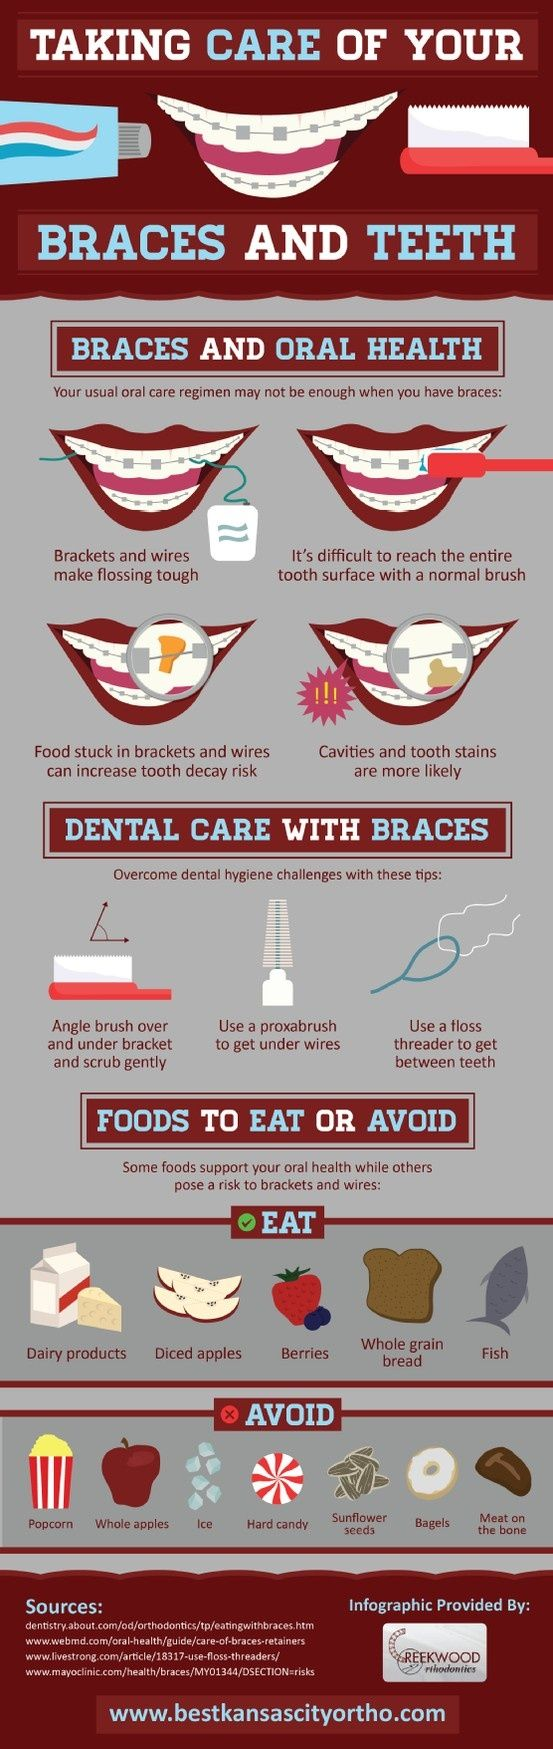 Tips for Taking Care of your Braces and Teeth - www.forgreatsmiles.com - Dr. Trent Lofgren, DDS